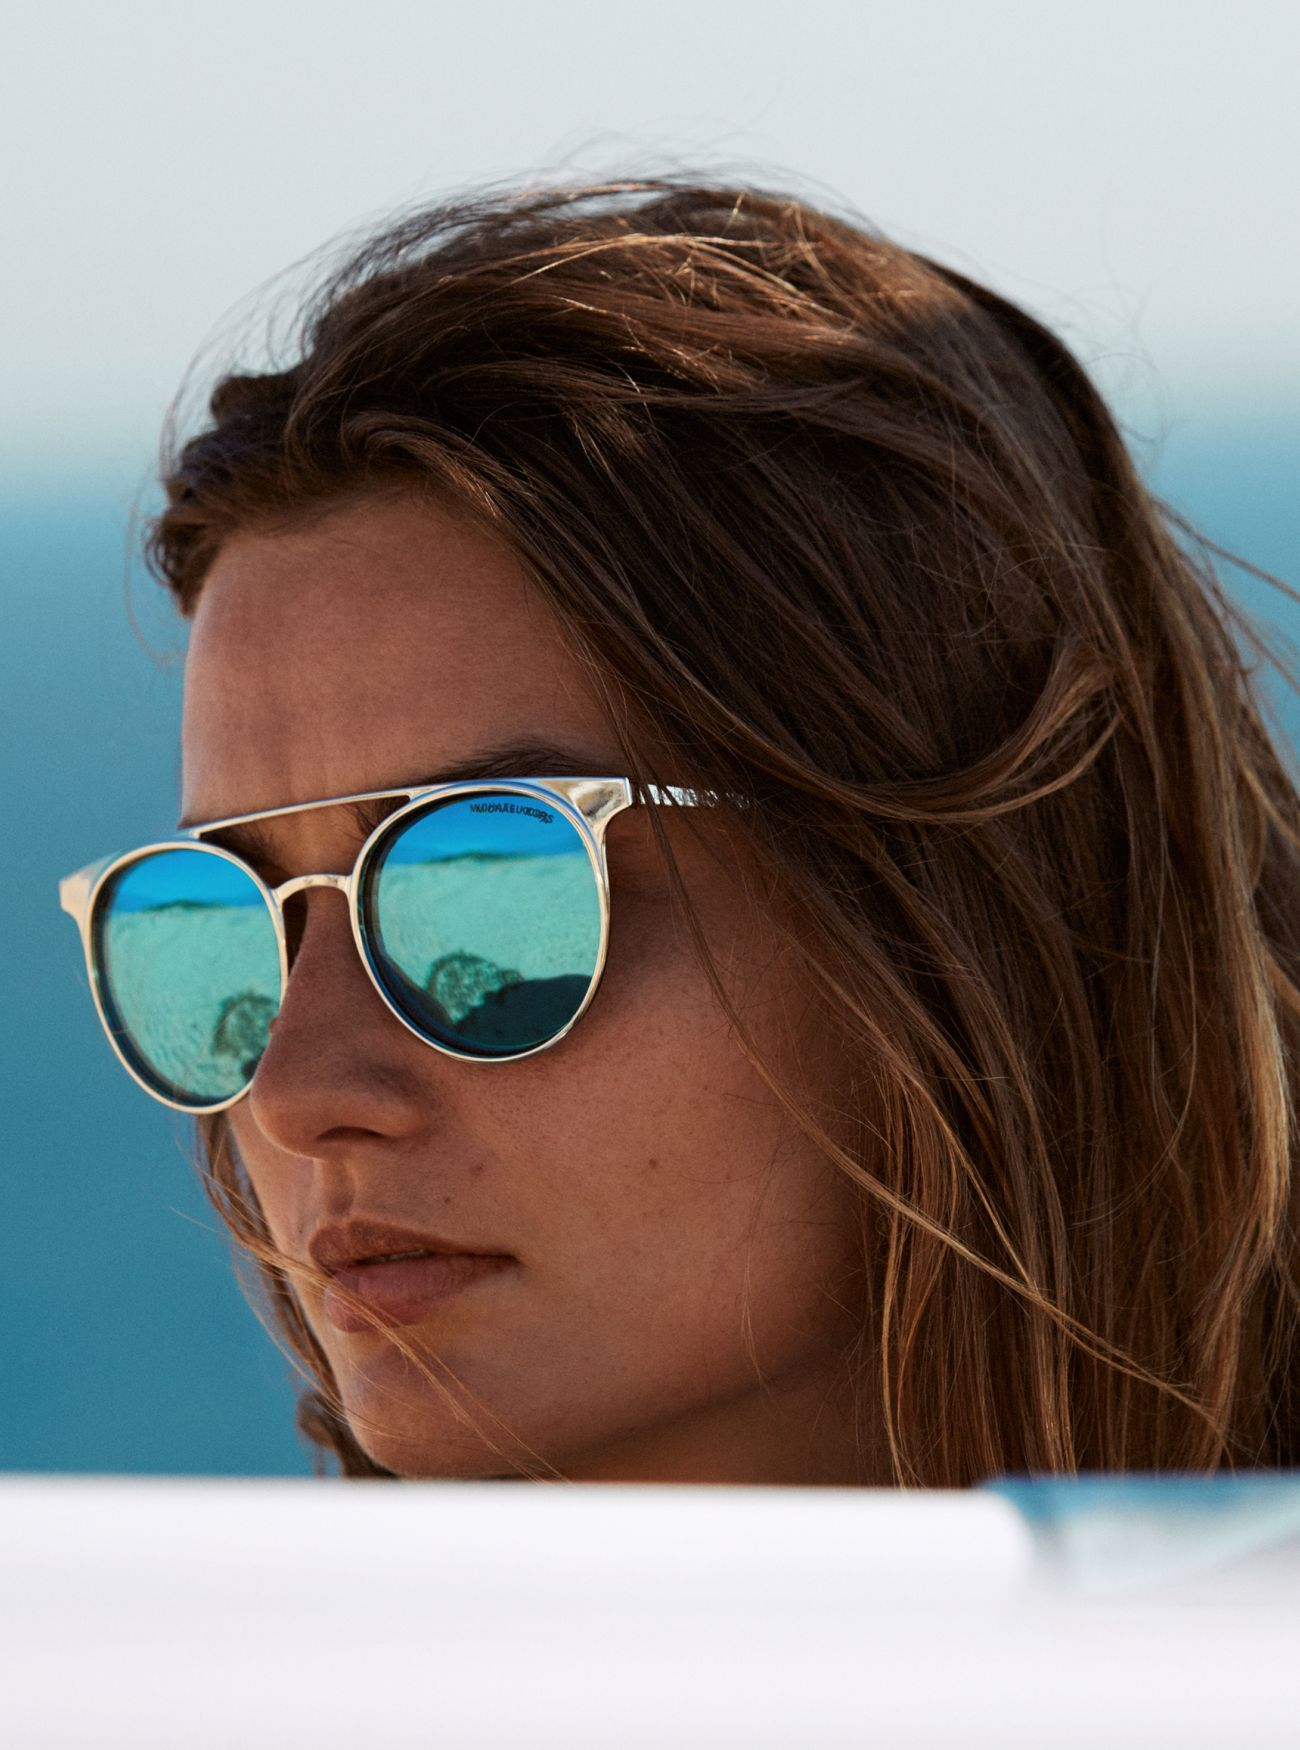 6645f27c30da From Michael Kors, the Grayton Sunglasses. Designed in a rounded silhouette  with a double